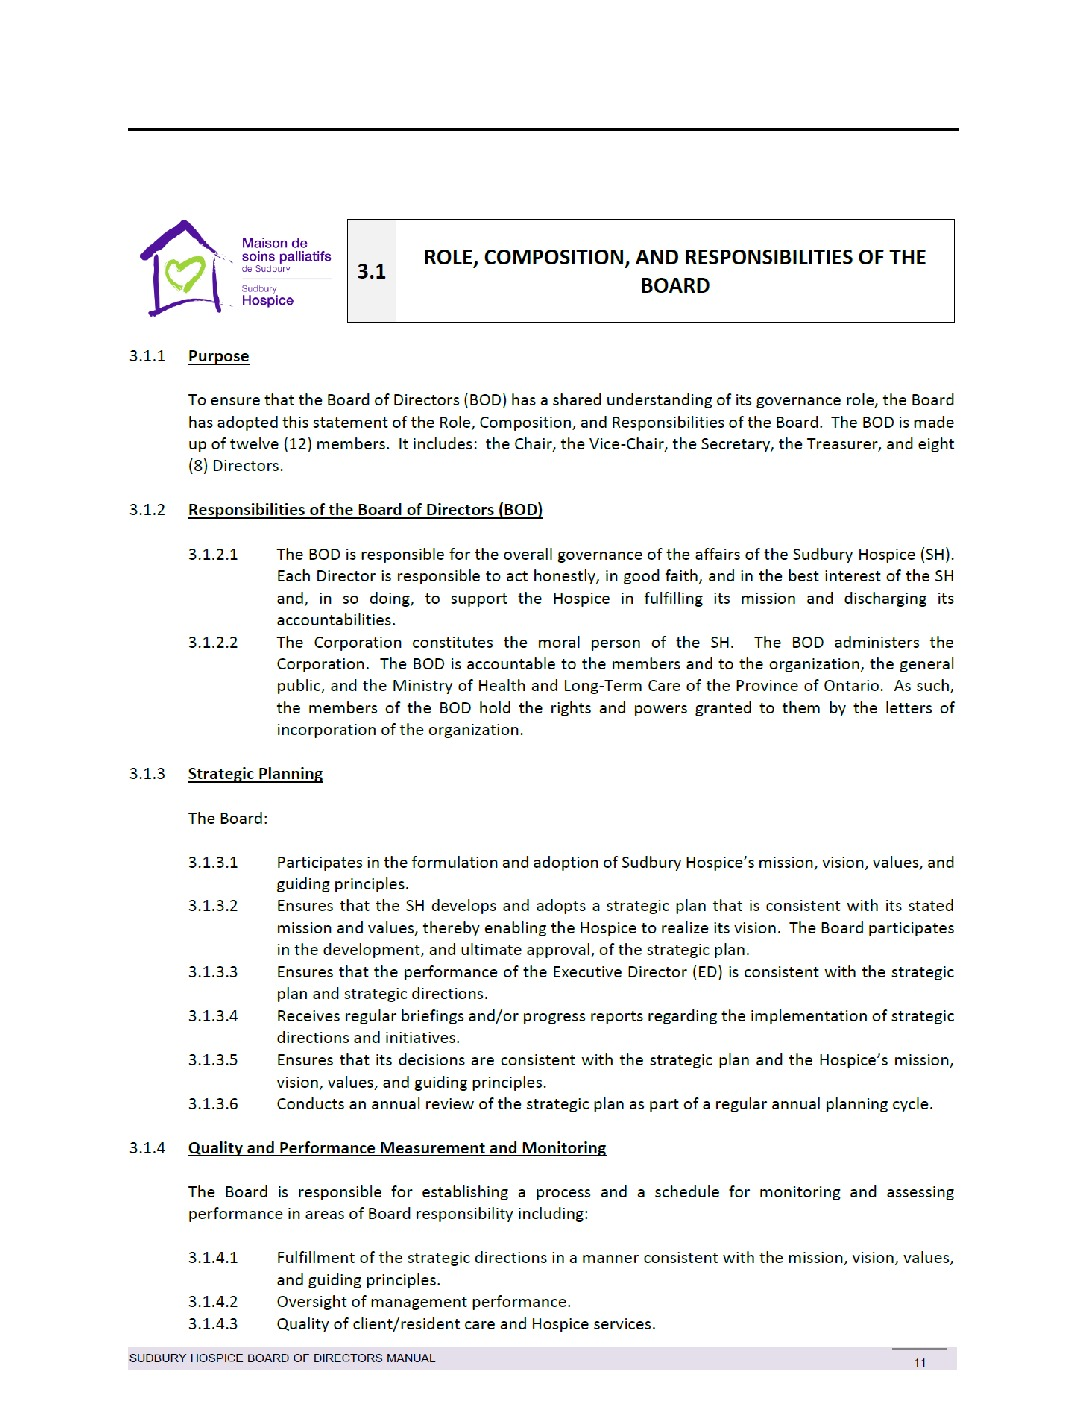 thumbnail of MMH_Role, Composition and Responsibilities of the Board